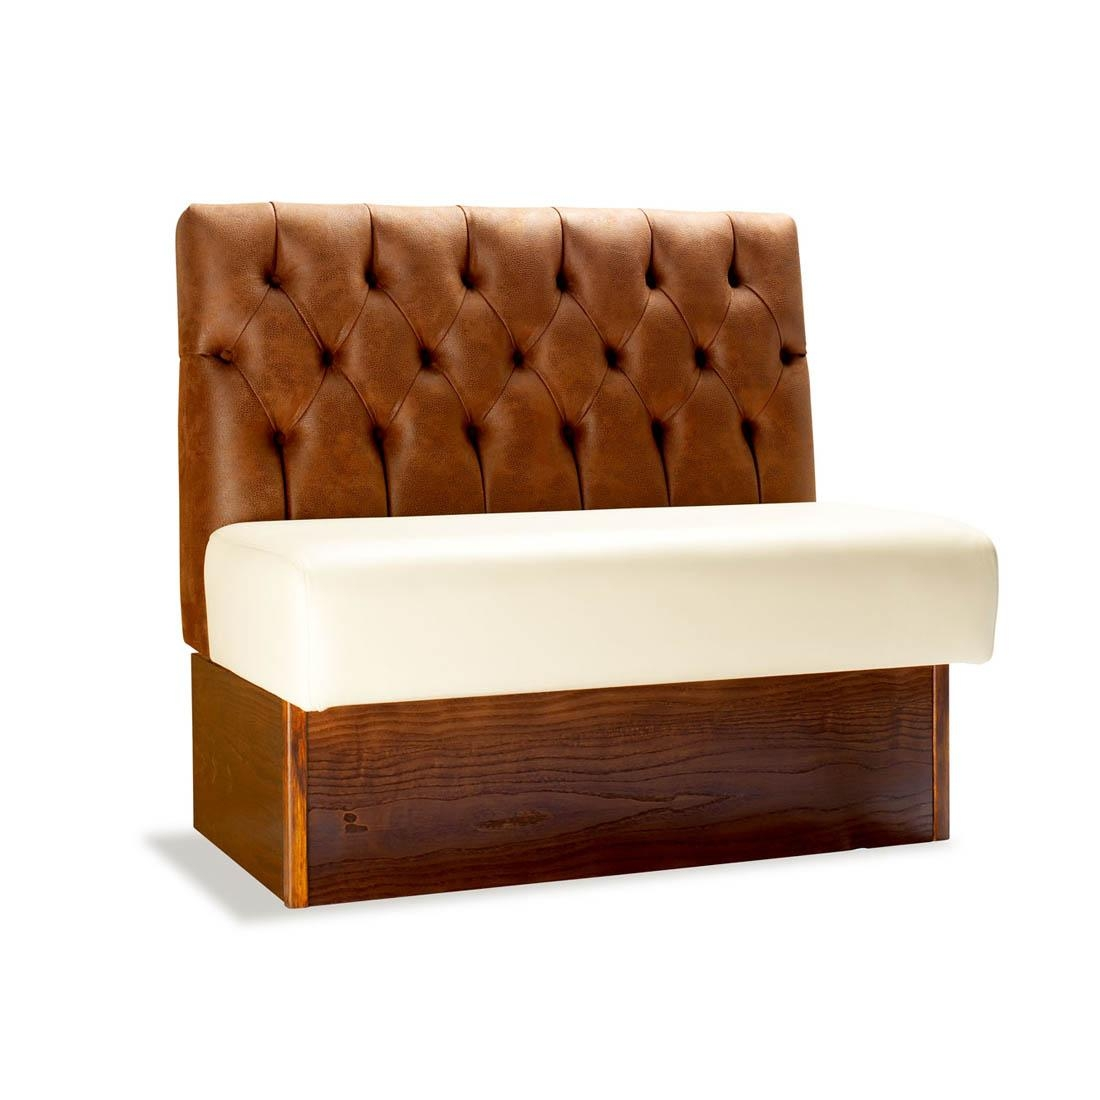 Banquette Seating Manufacturer Design – Banquette Design With Regard To Banquette Sofas (Image 7 of 20)